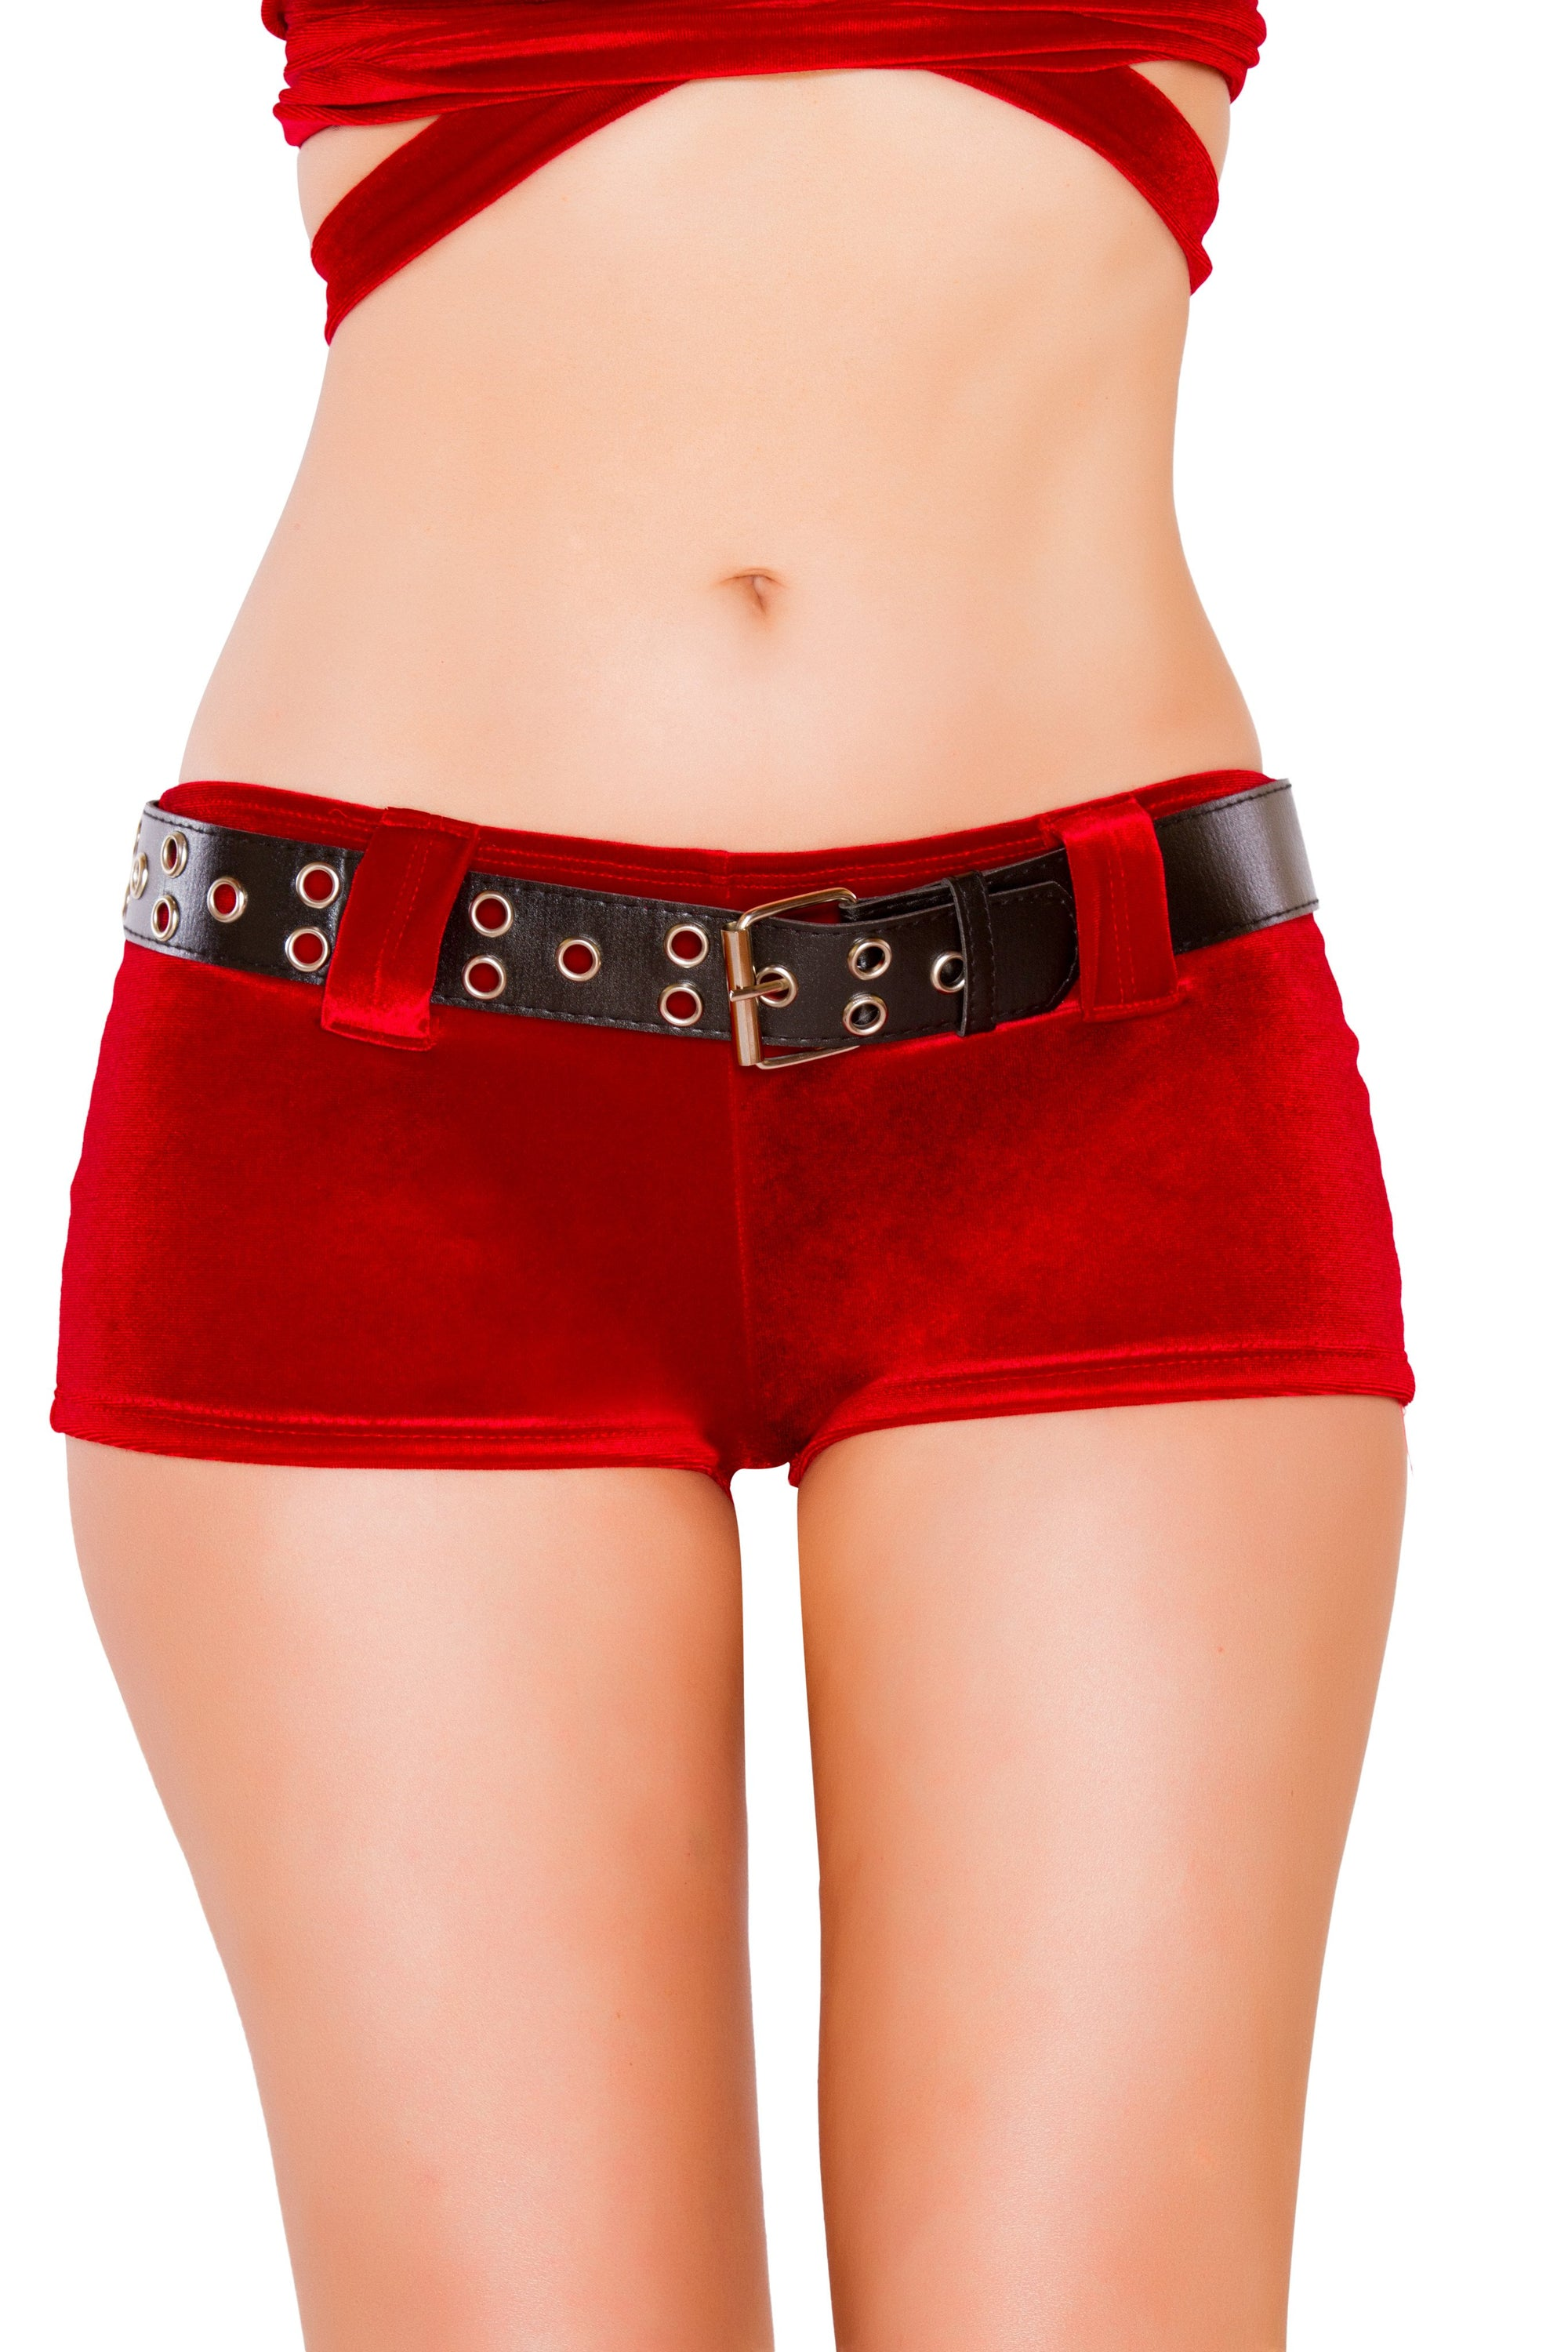 Buy Red Velvet Shorts with Belt from Rave Fix for $18.99 with Same Day Shipping Designed by Roma Costume SH3229-AS-S/M